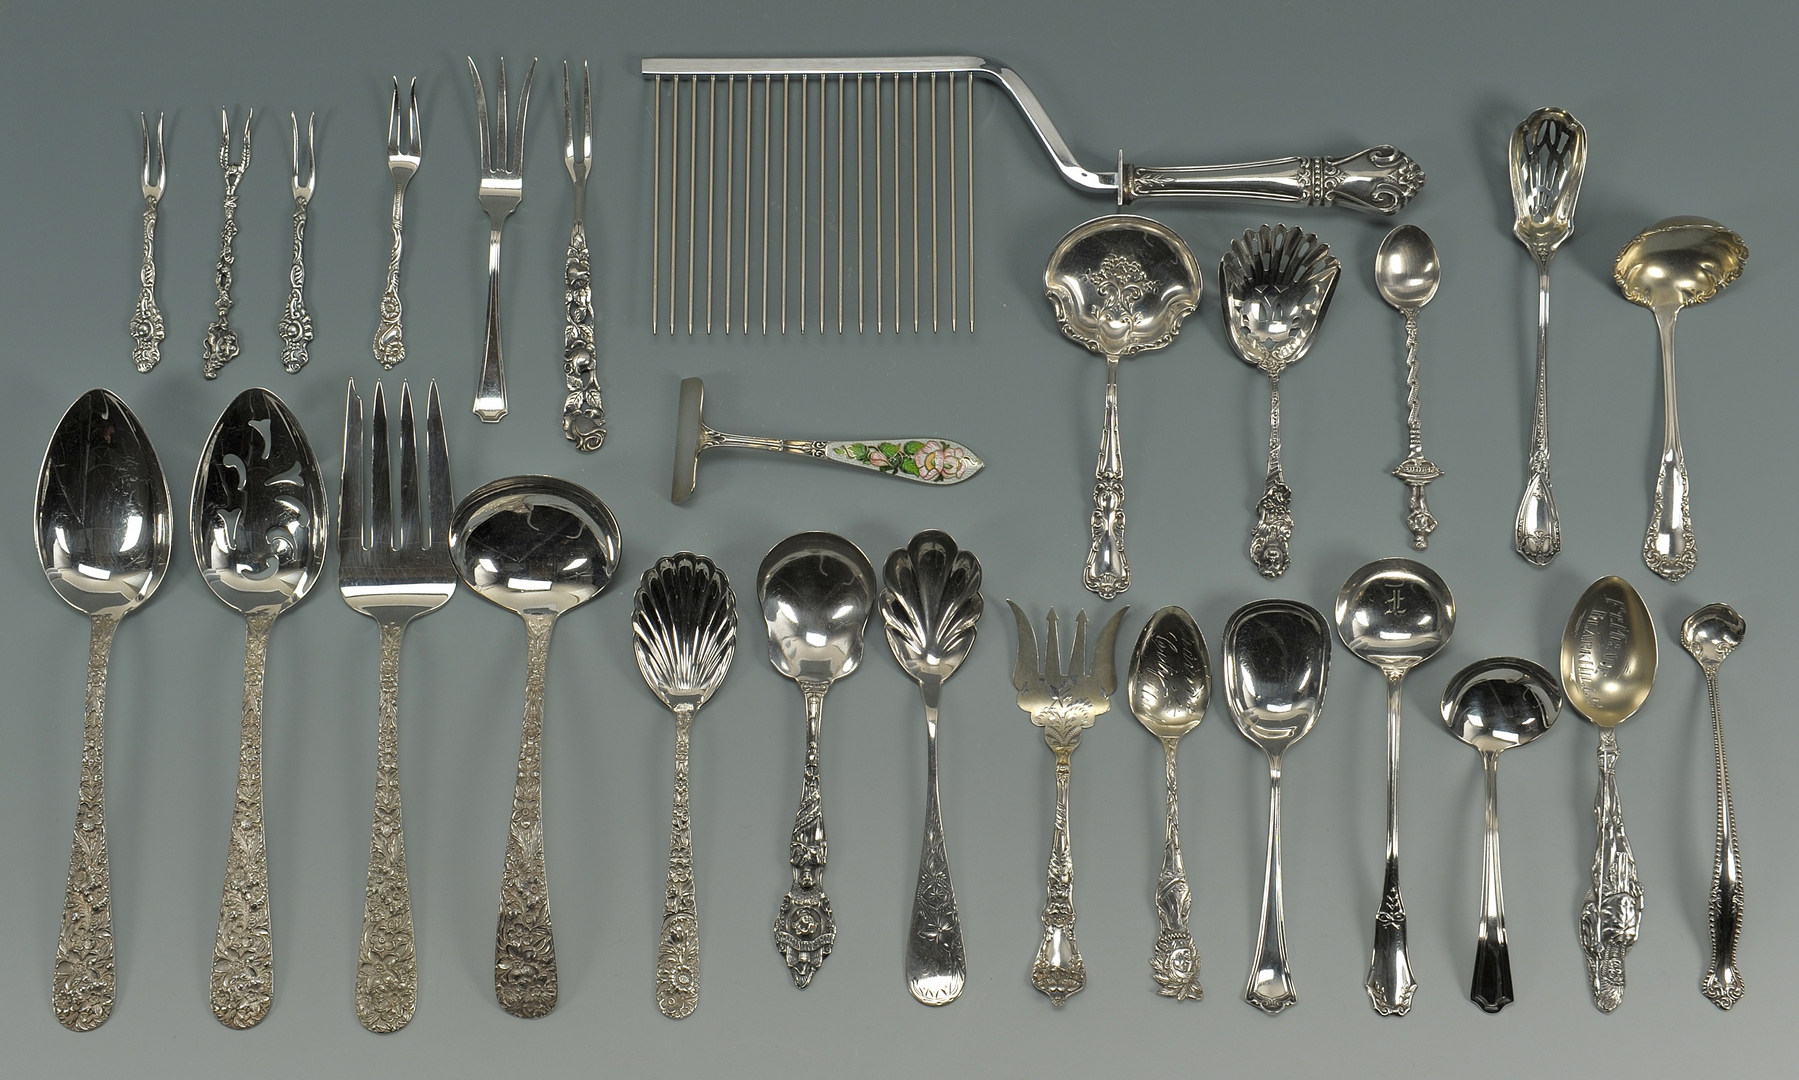 Lot 418: 27 pieces assorted early 20th c. flatware